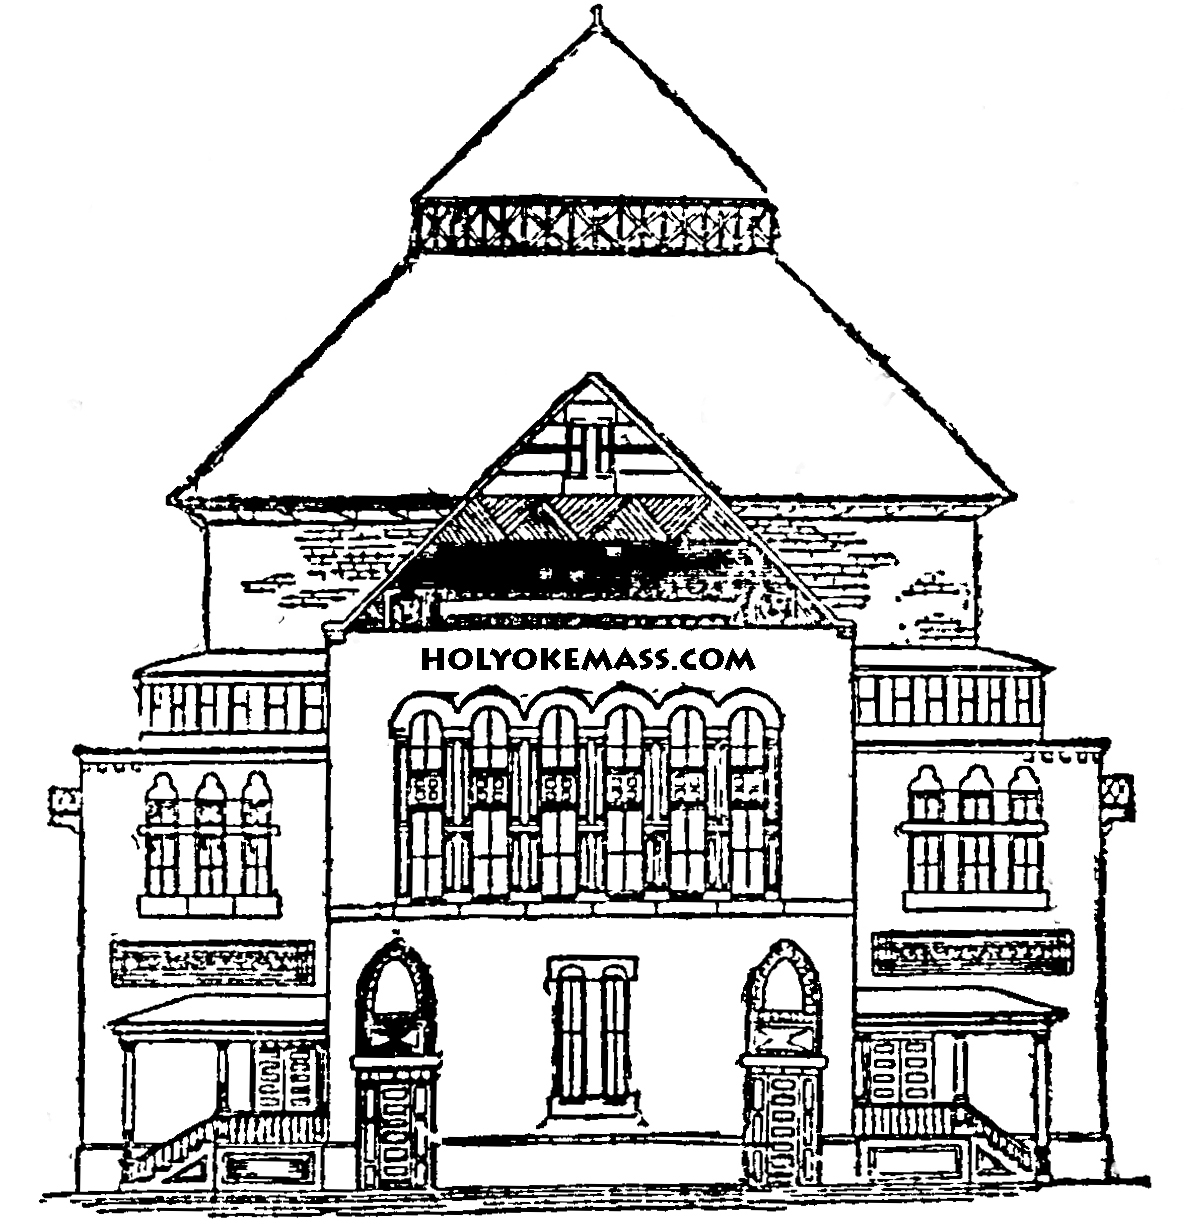 Holyoke Mass Blog Archive Holyoke Opera House Opened